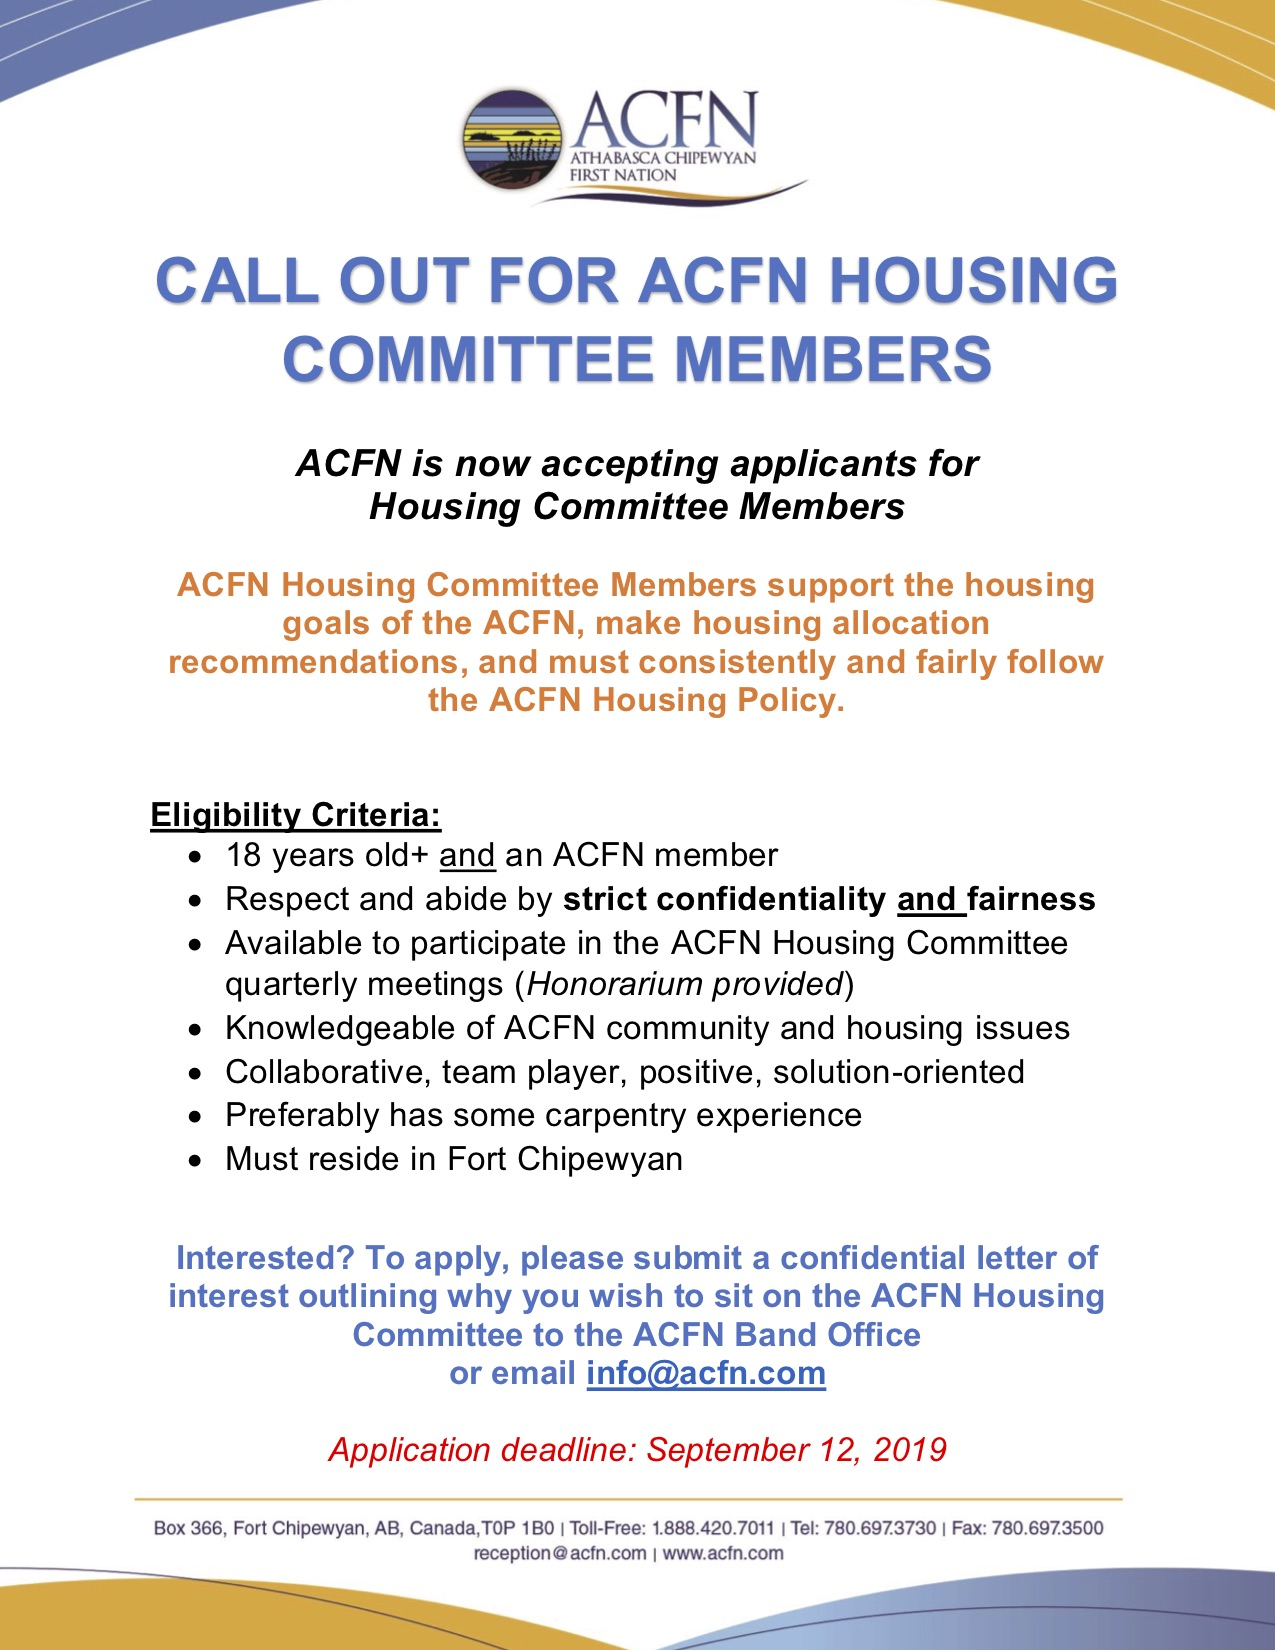 ACFN Housing Committee - Call out for Membership